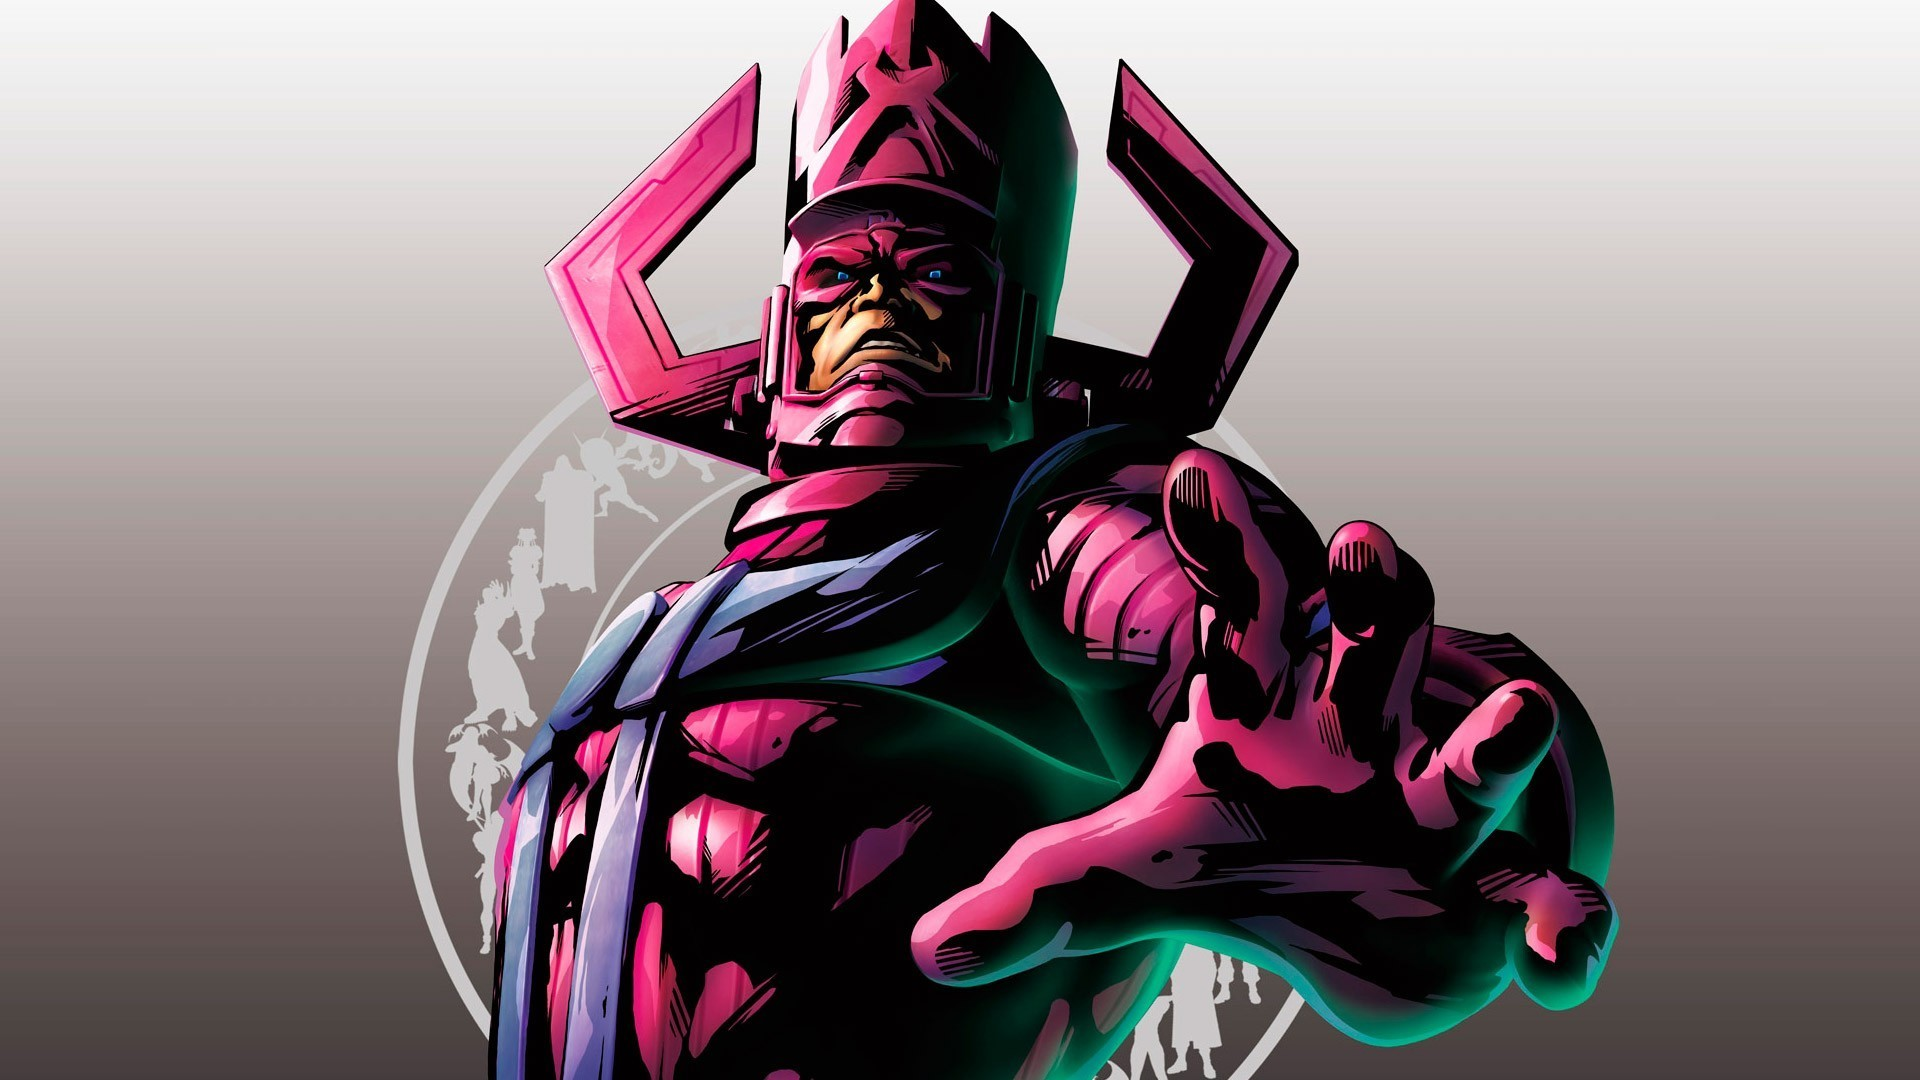 Res: 1920x1080, Galactus marvel vs capcom 3 wallpaper